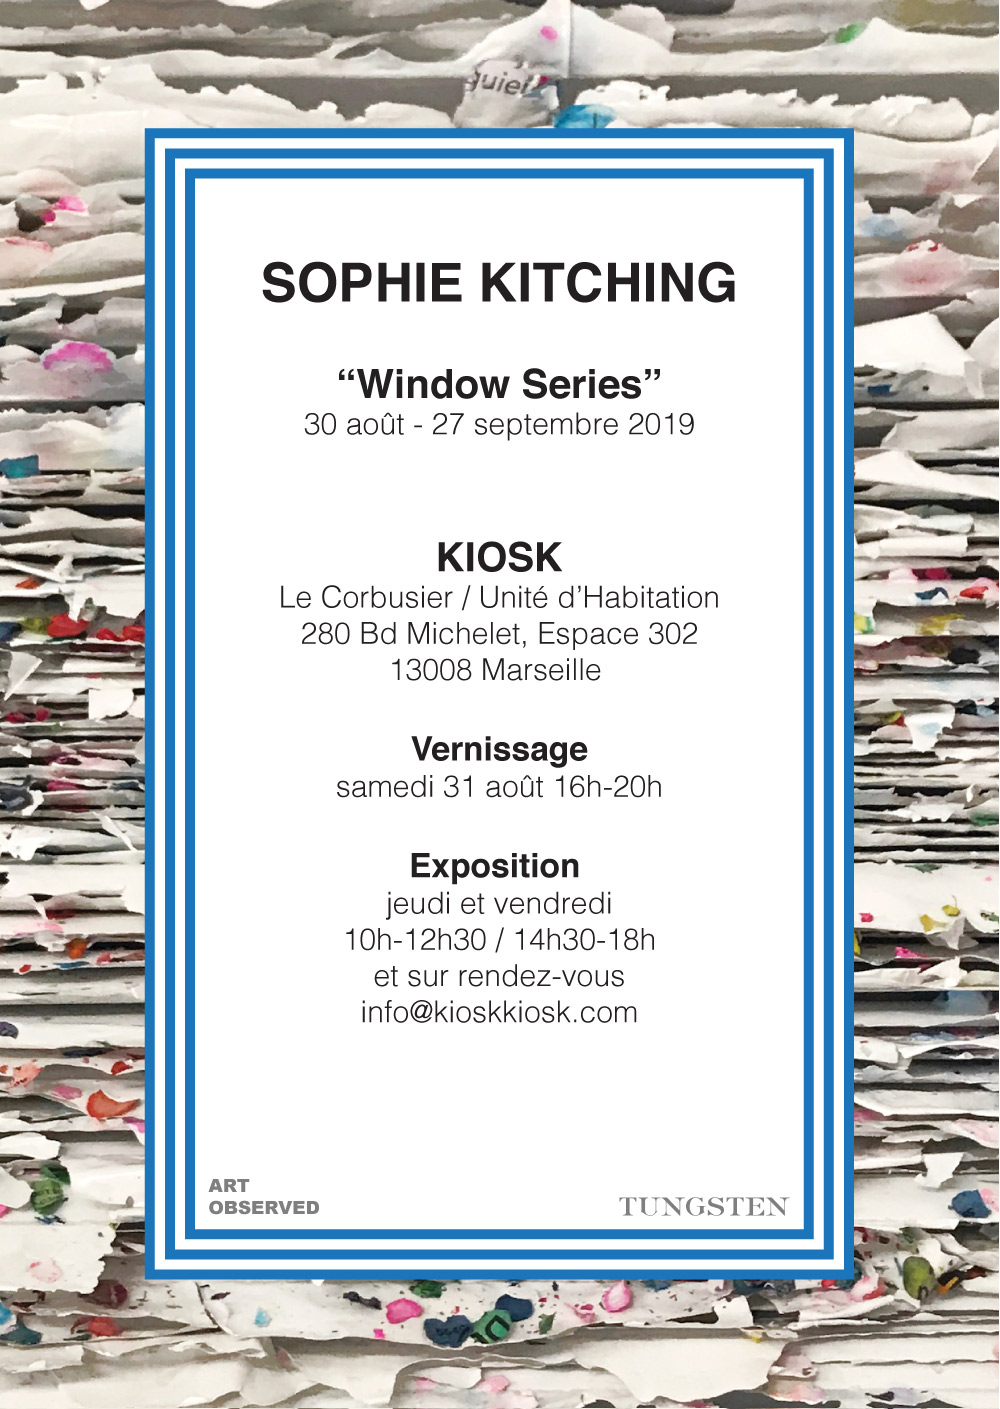 Sophie-Kitching-Flyer-TAO-2.jpg